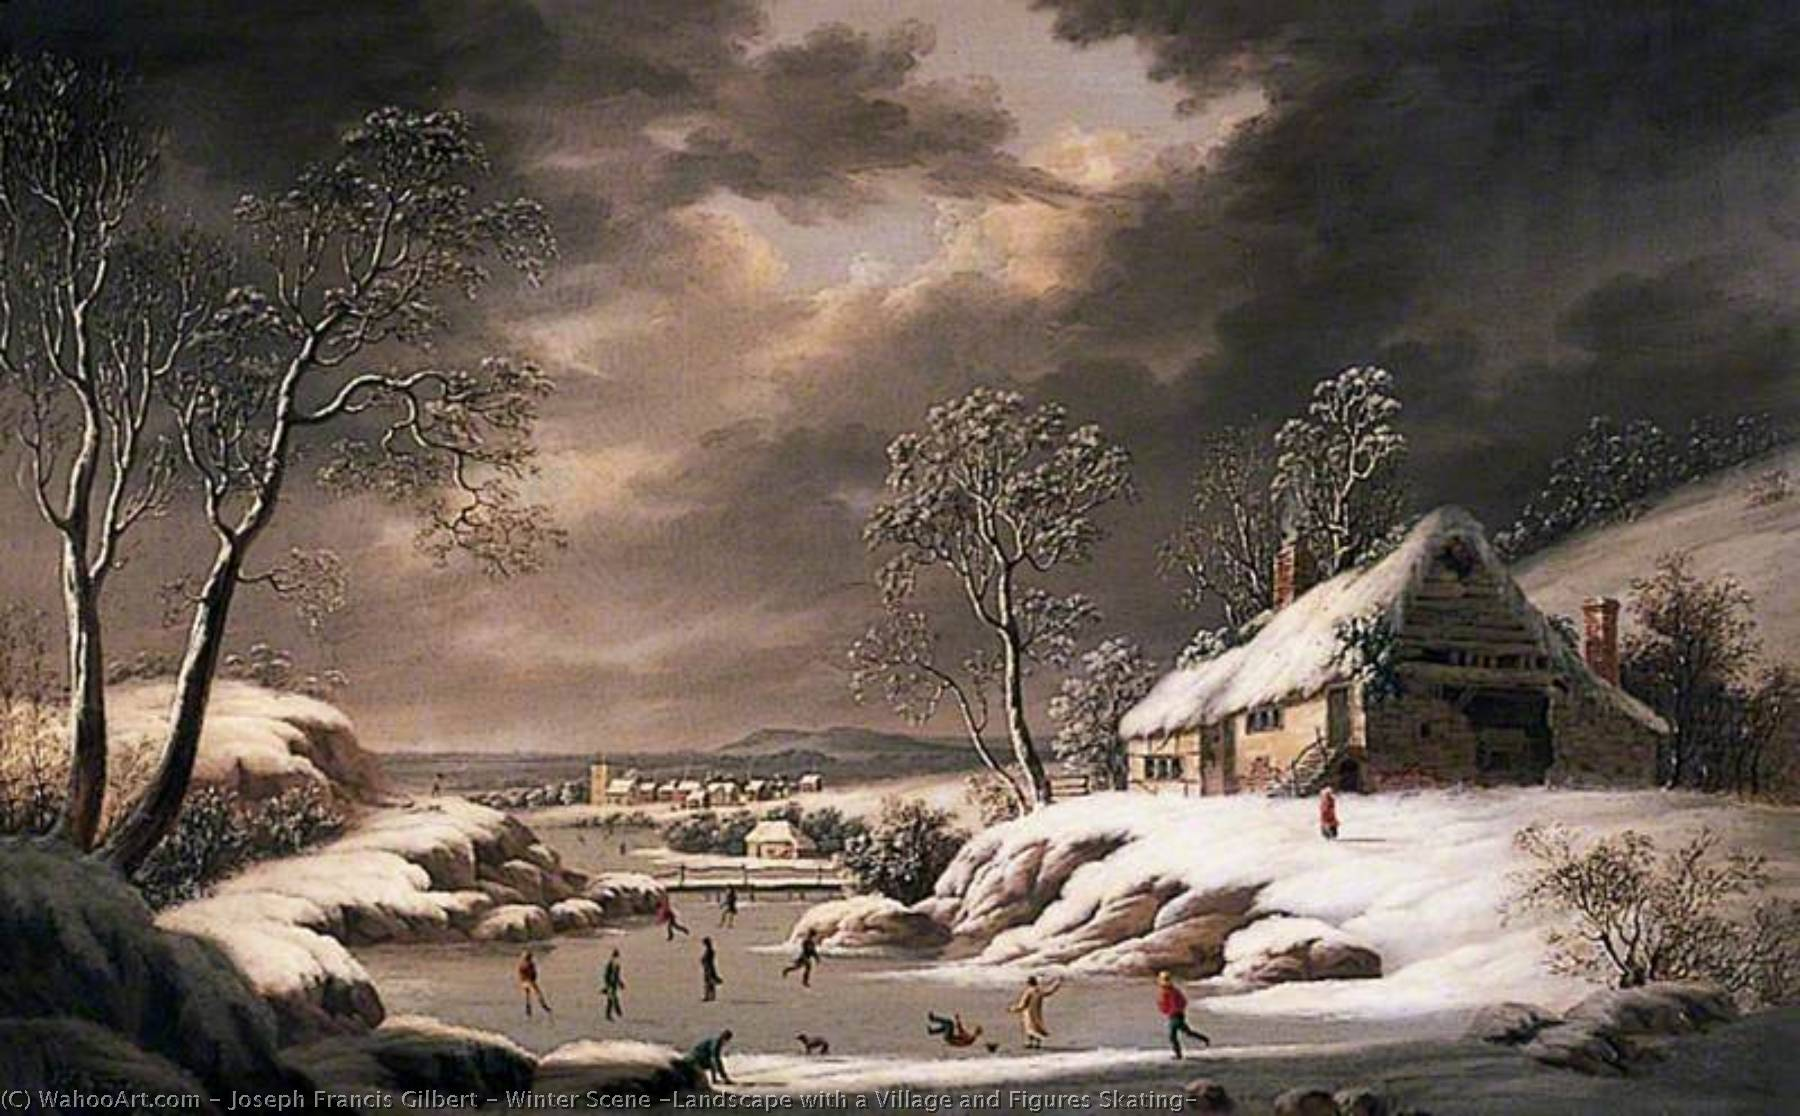 Winter Scene (Landscape with a Village and Figures Skating), Oil On Canvas by Joseph Francis Gilbert